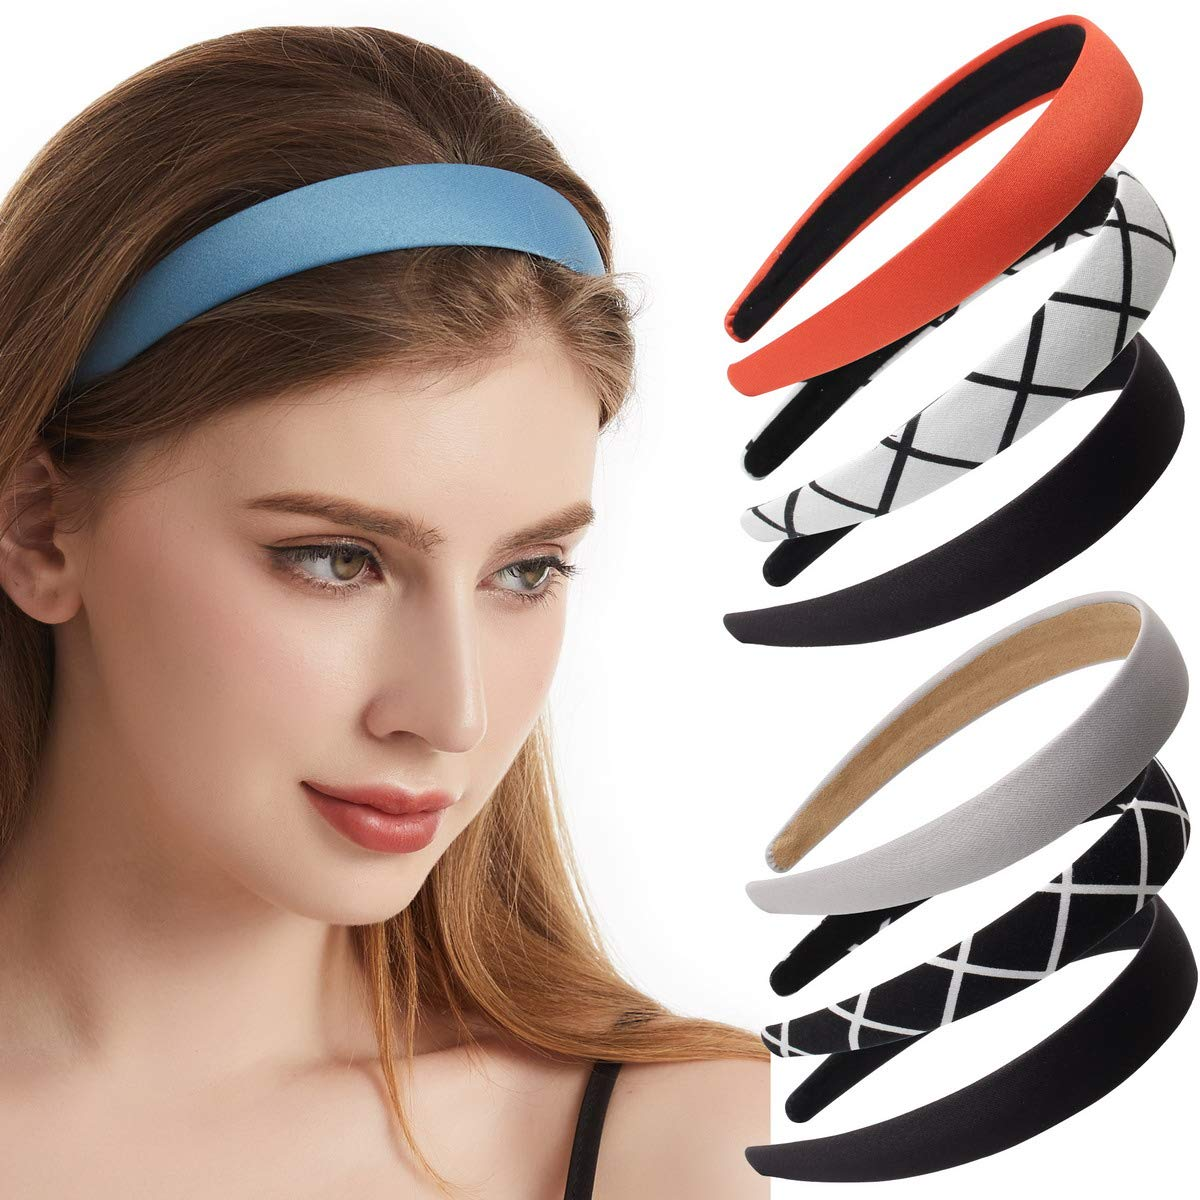 6 Pack Manufacturer direct delivery Fabric half Plain Headbands for or Girl Ribbon Women Non-slip